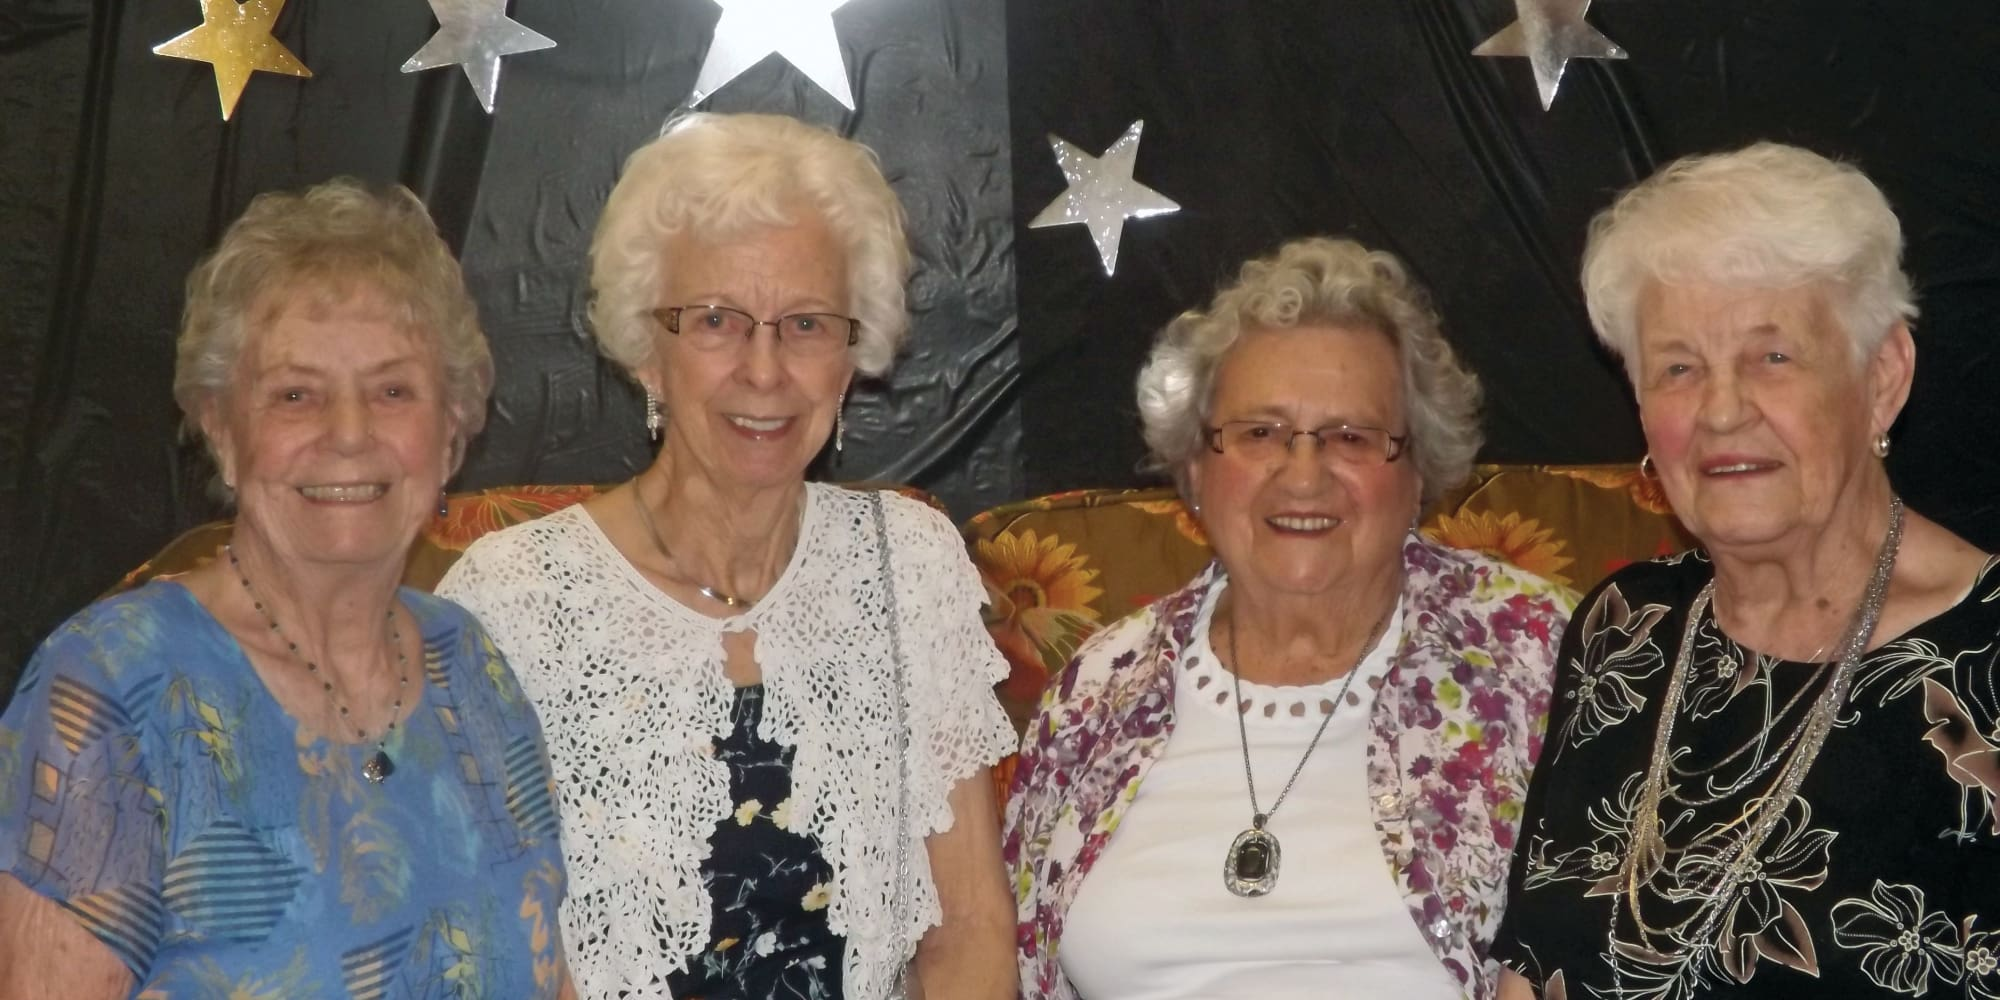 Four residents in front of a backdrop at Winterberry Heights Assisted Living in Bangor, Maine